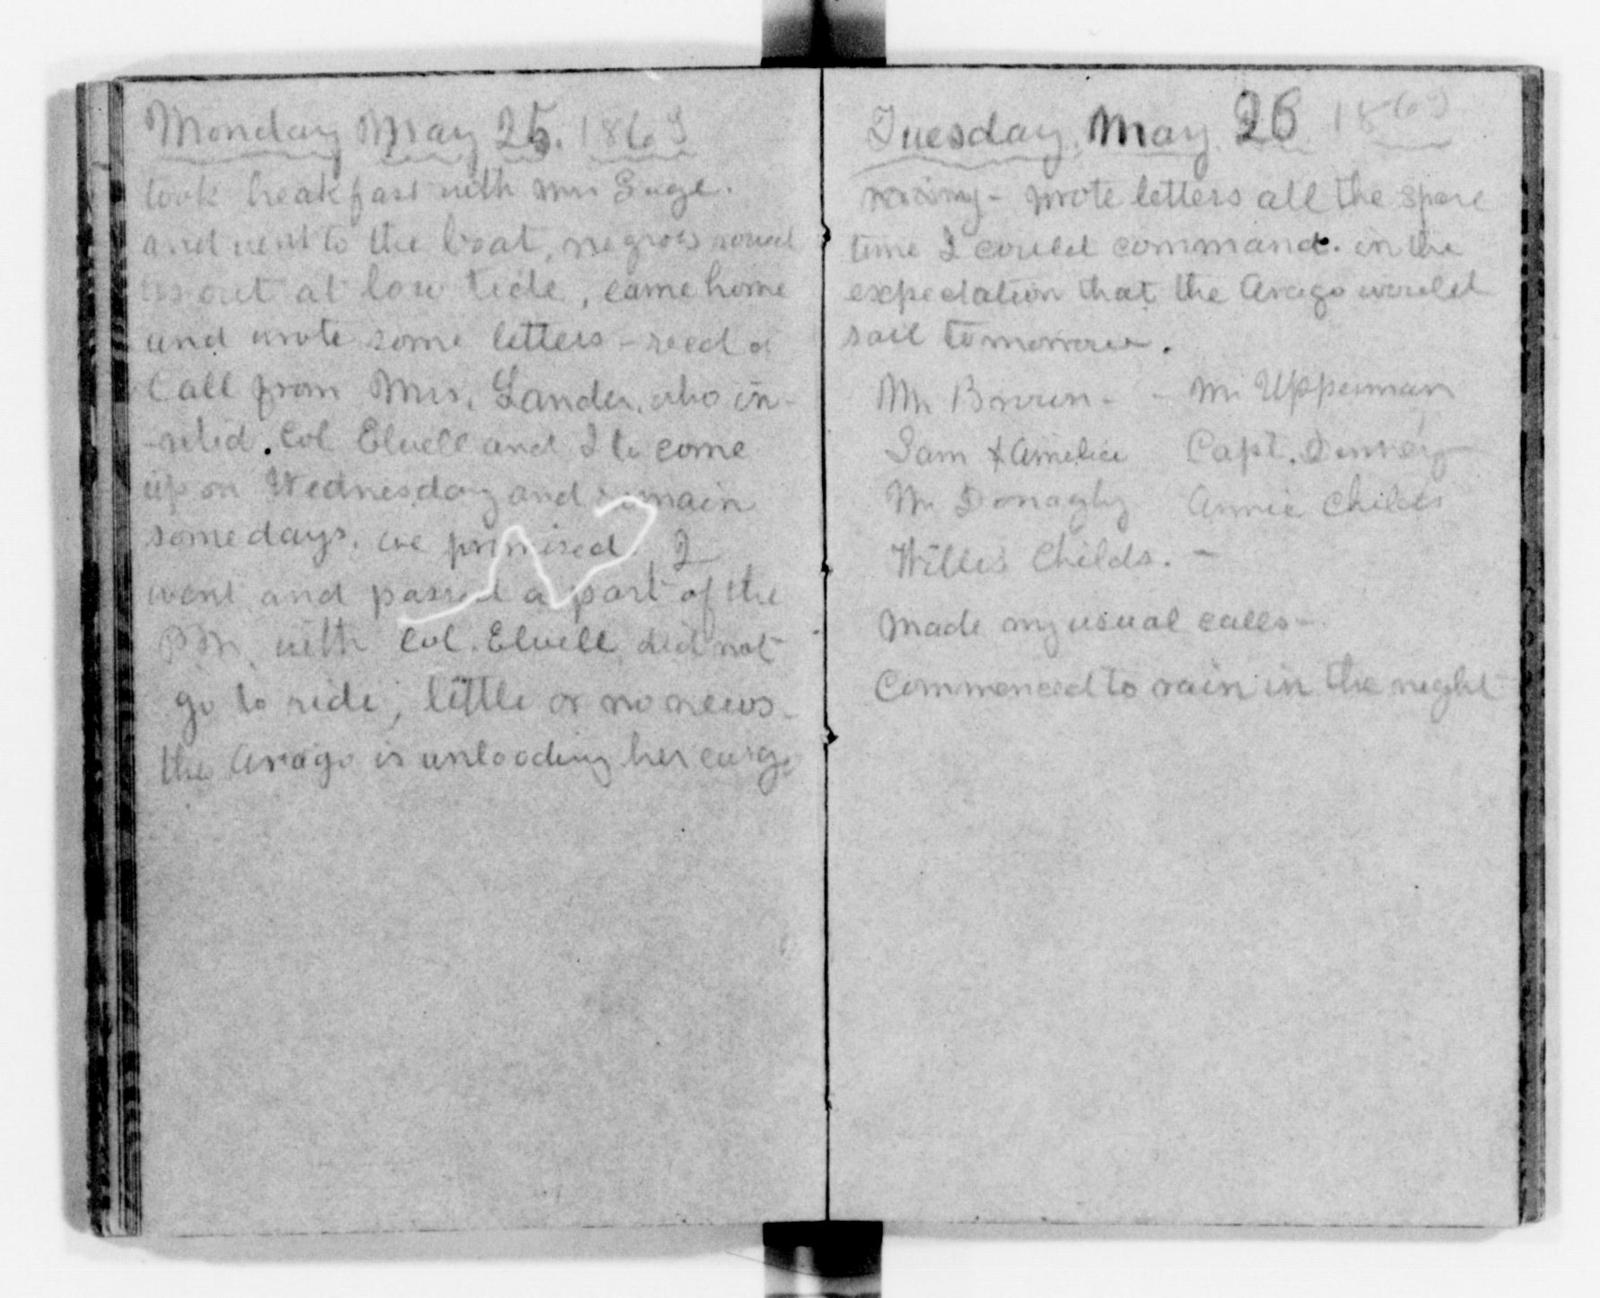 Clara Barton Papers: Diaries and Journals: 1863, Apr. 2-July 23